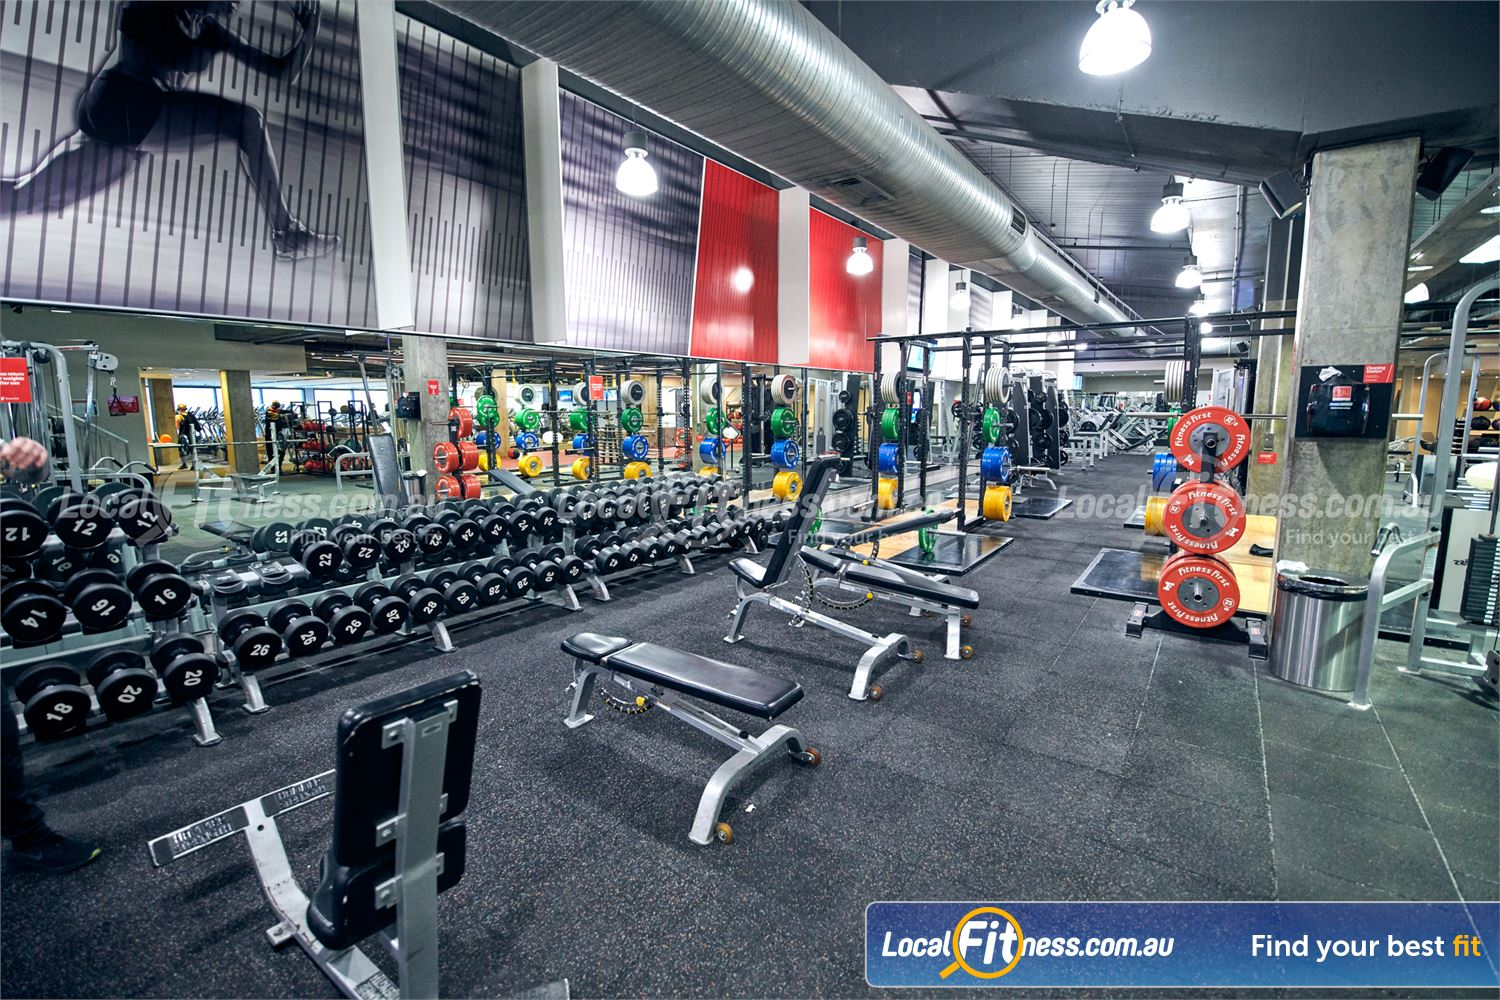 Fitness First Victoria Gardens Richmond Our Richmond gym includes a comprehensive free-weights area.